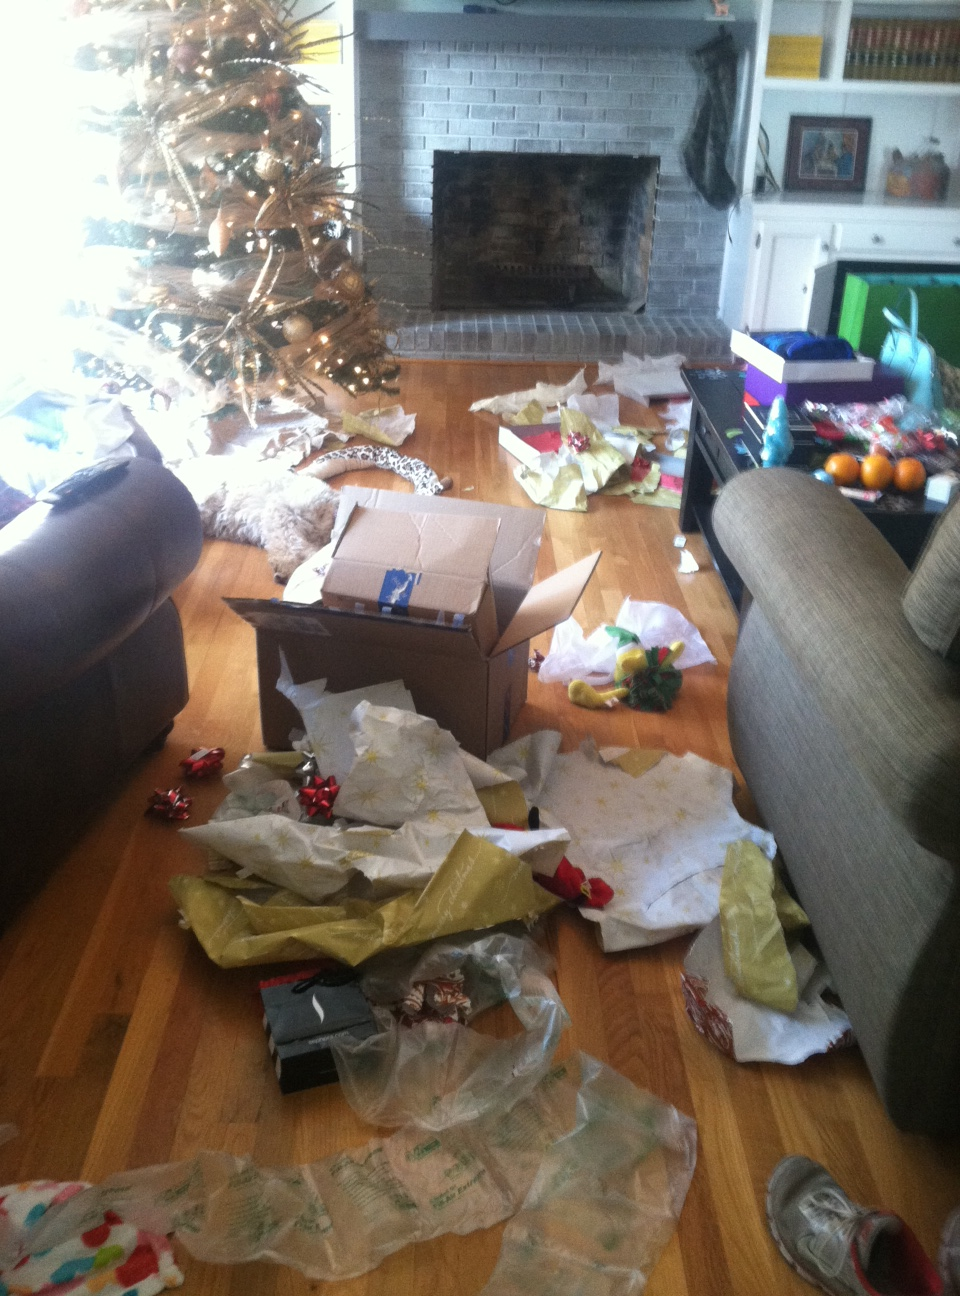 The Aftermath of Christmas morning at the Hathorn House haha